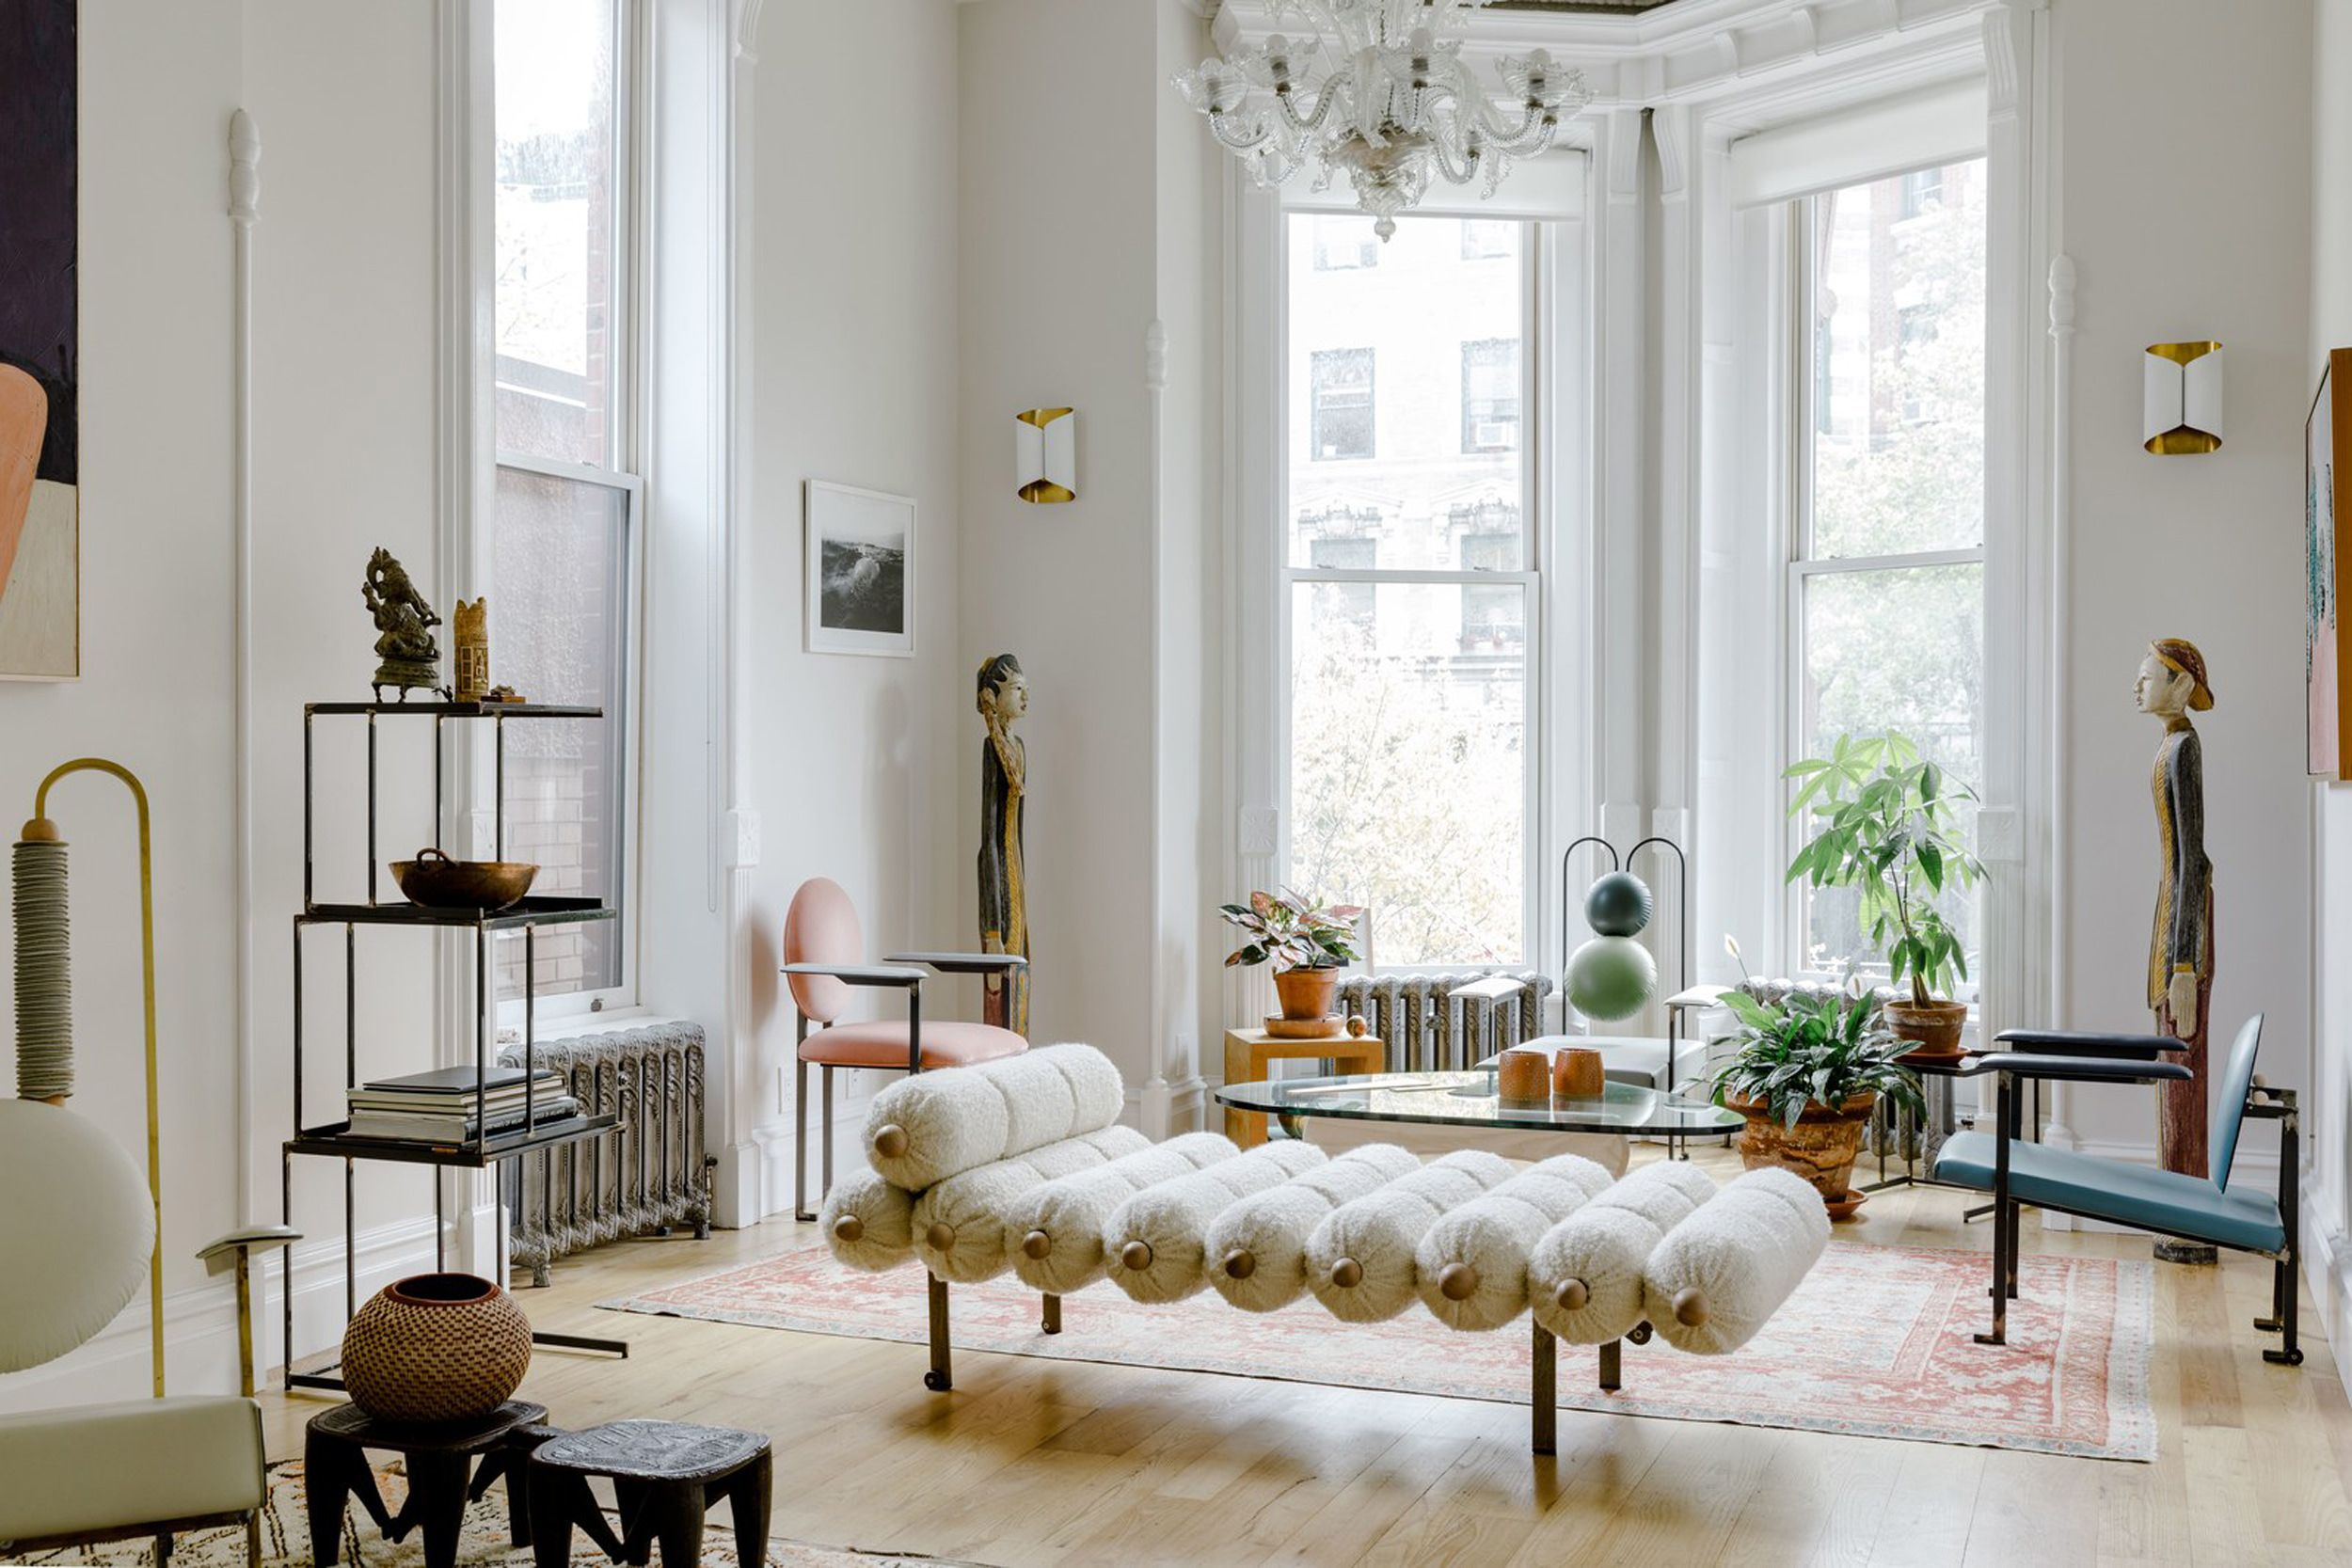 2019 Design Trends Why You Should Know About New Postmodern Trending Decor Home Interior Design Trends